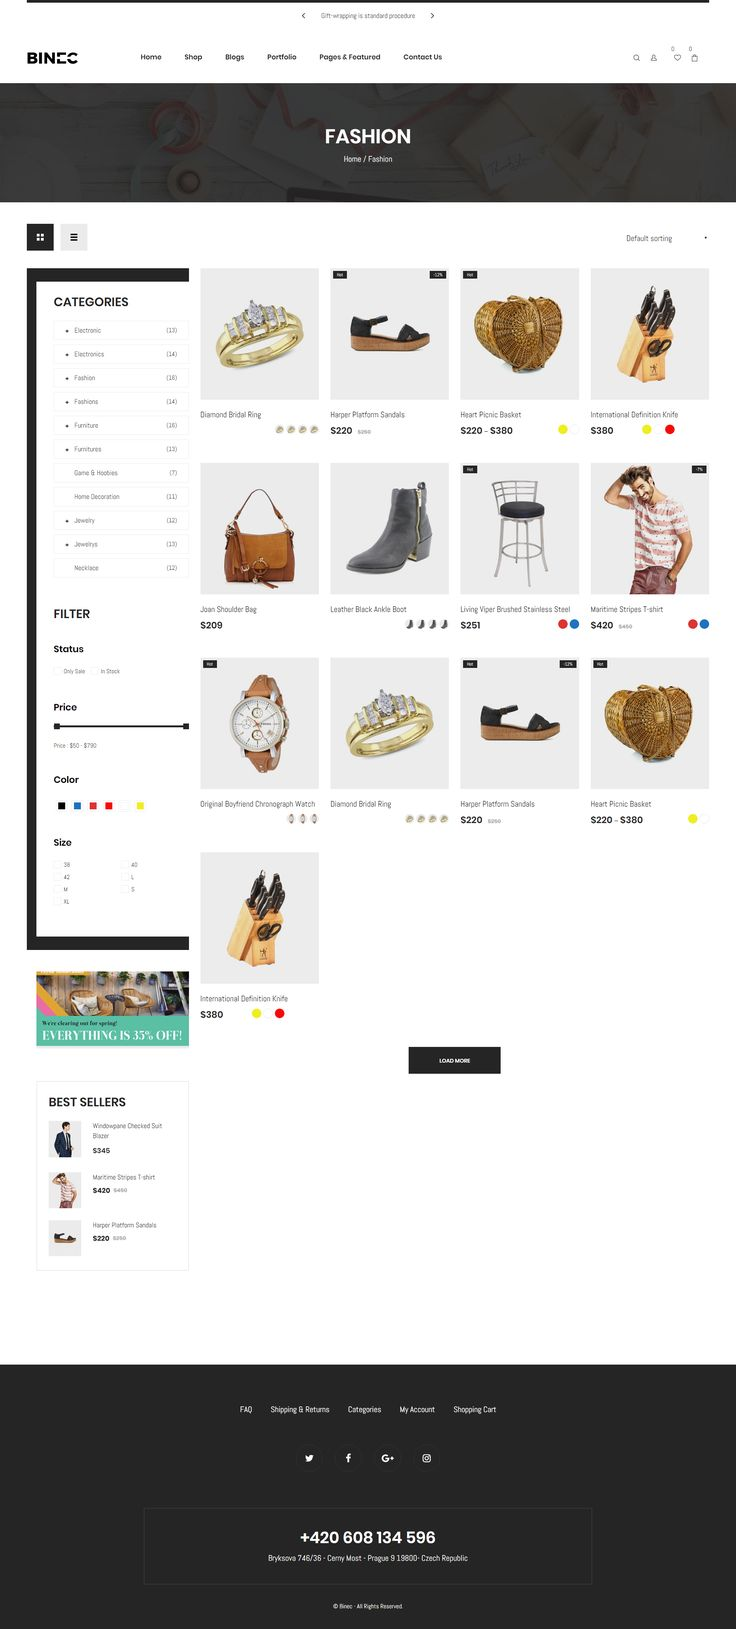 Binec 1.0.0 supports the latest #WordPress (4.8.x) and WooCommerce (3.1.x) Binec is a #WooCommerce #theme, built exclusively for online shopping and offers great variety of options to customize the look and feel of the theme via theme options panel. #design #website